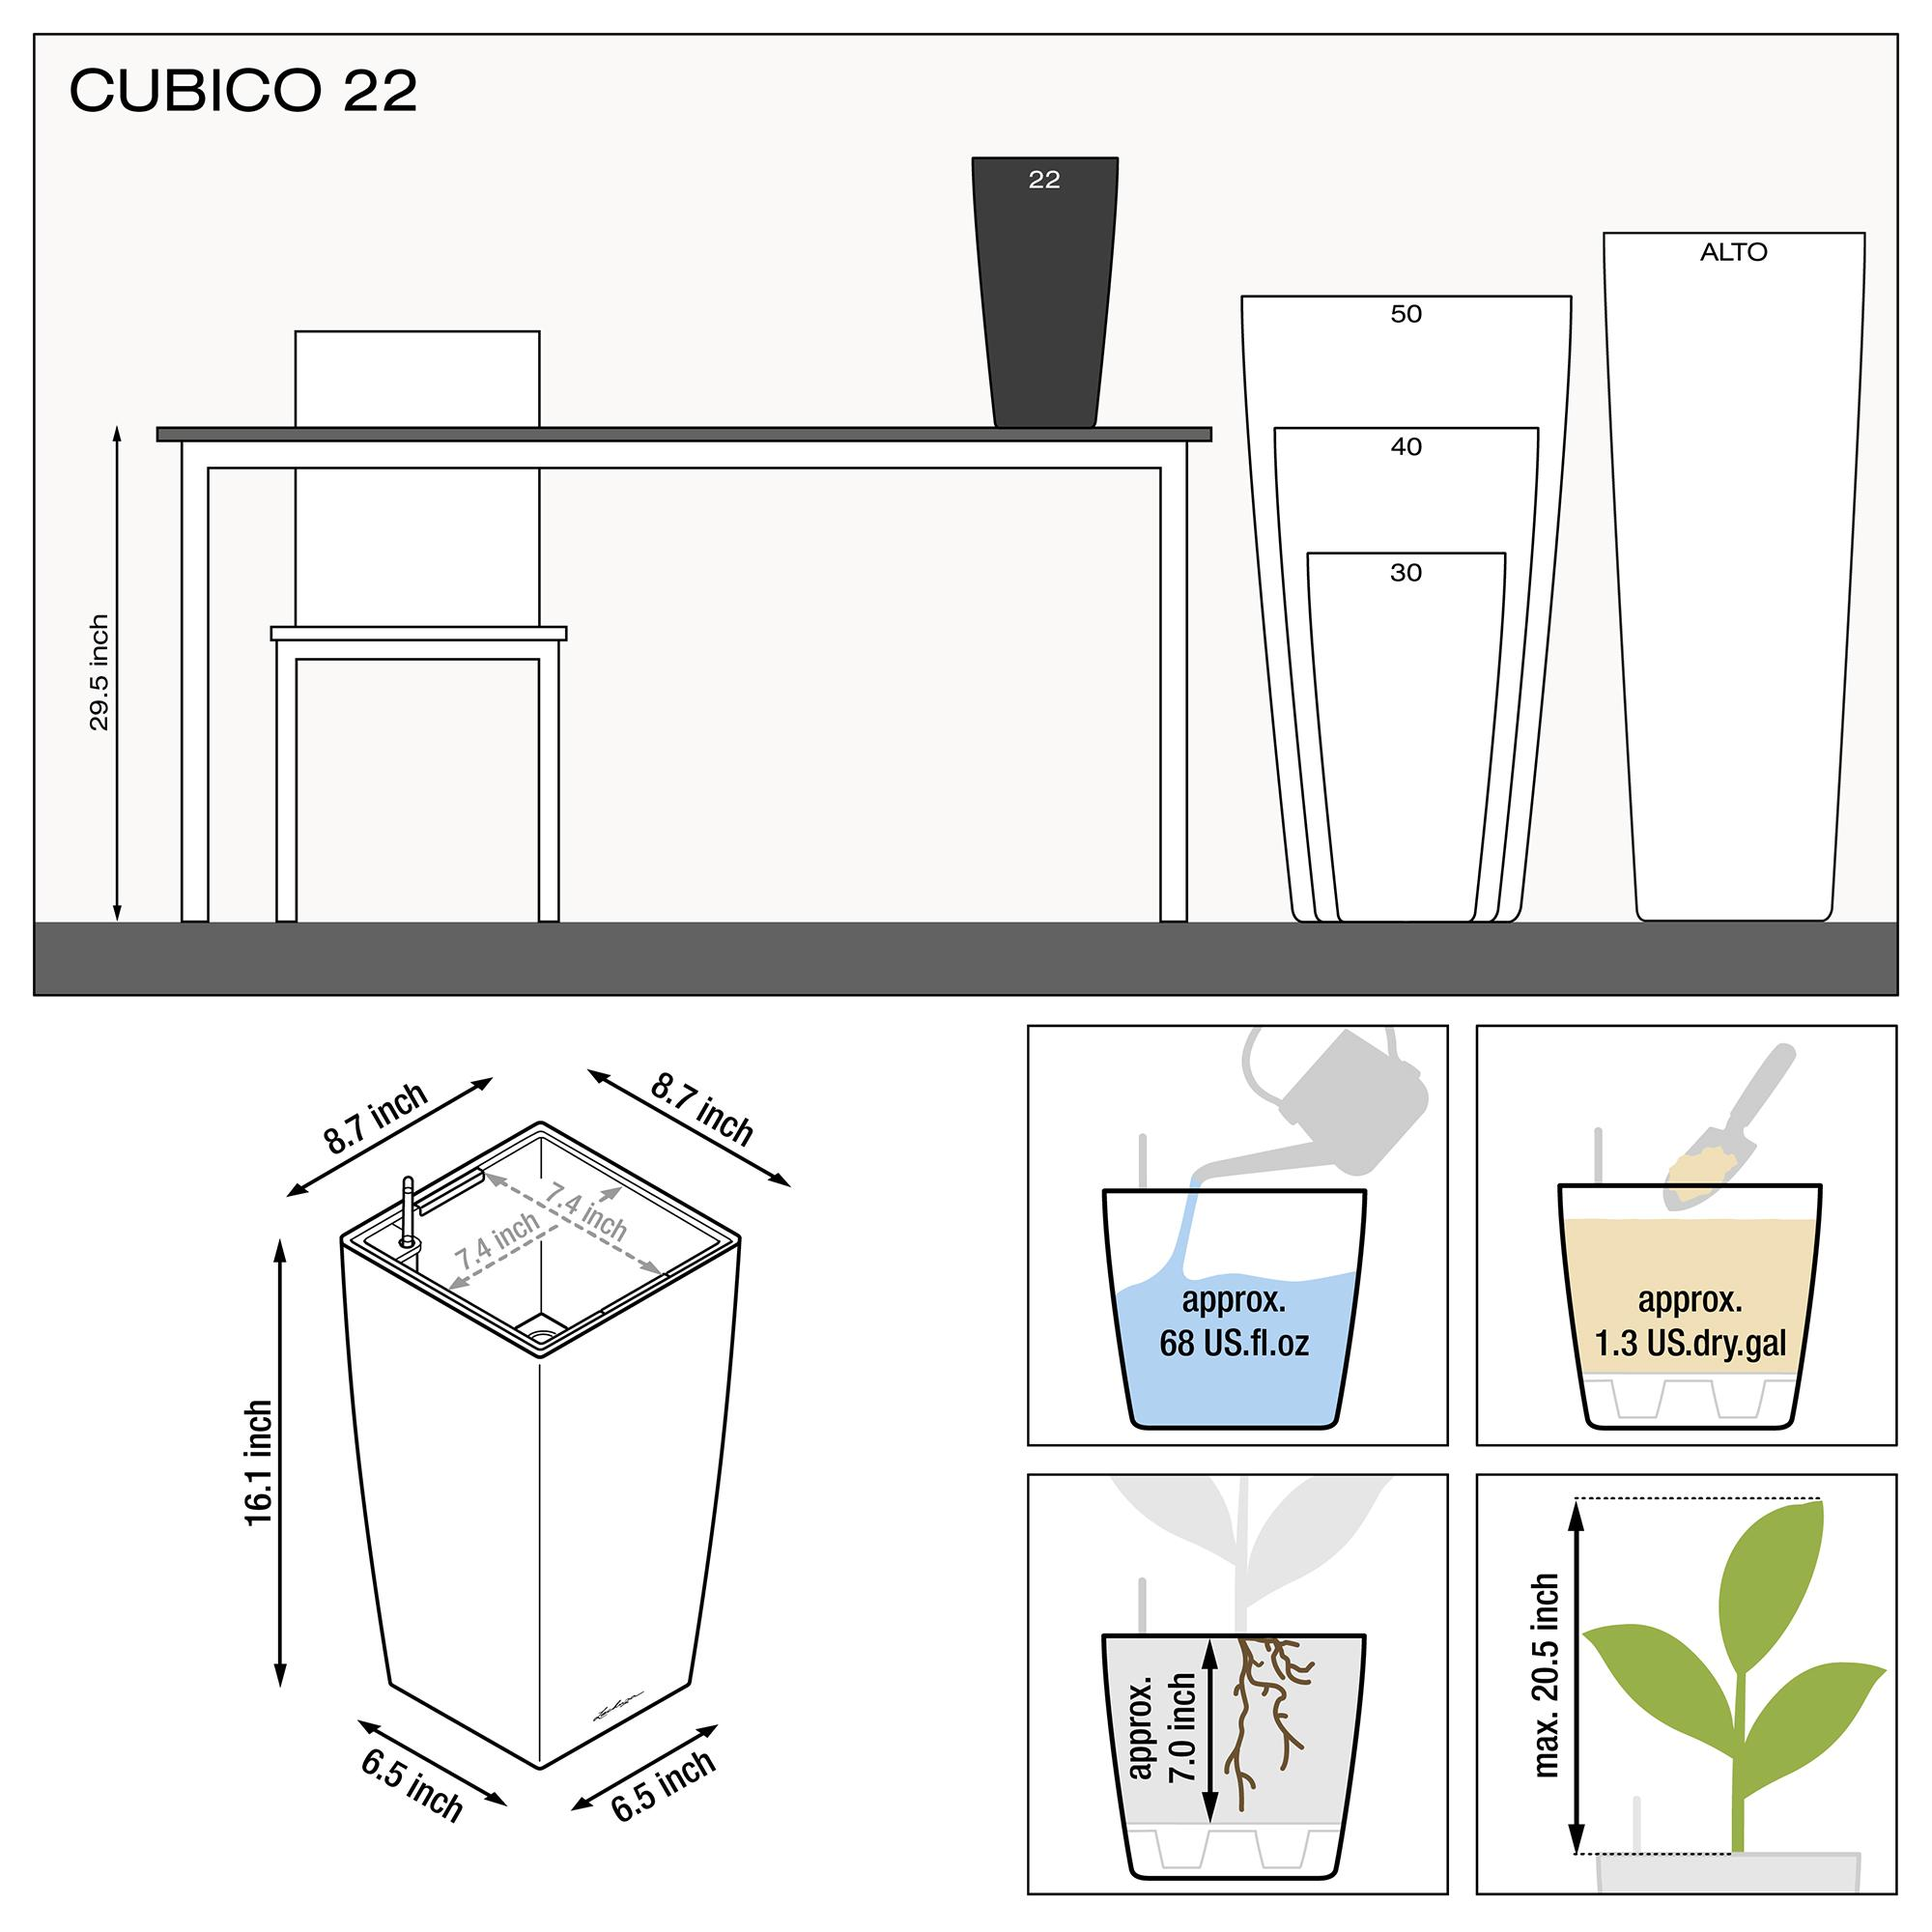 le_cubico22_product_addi_nz_us